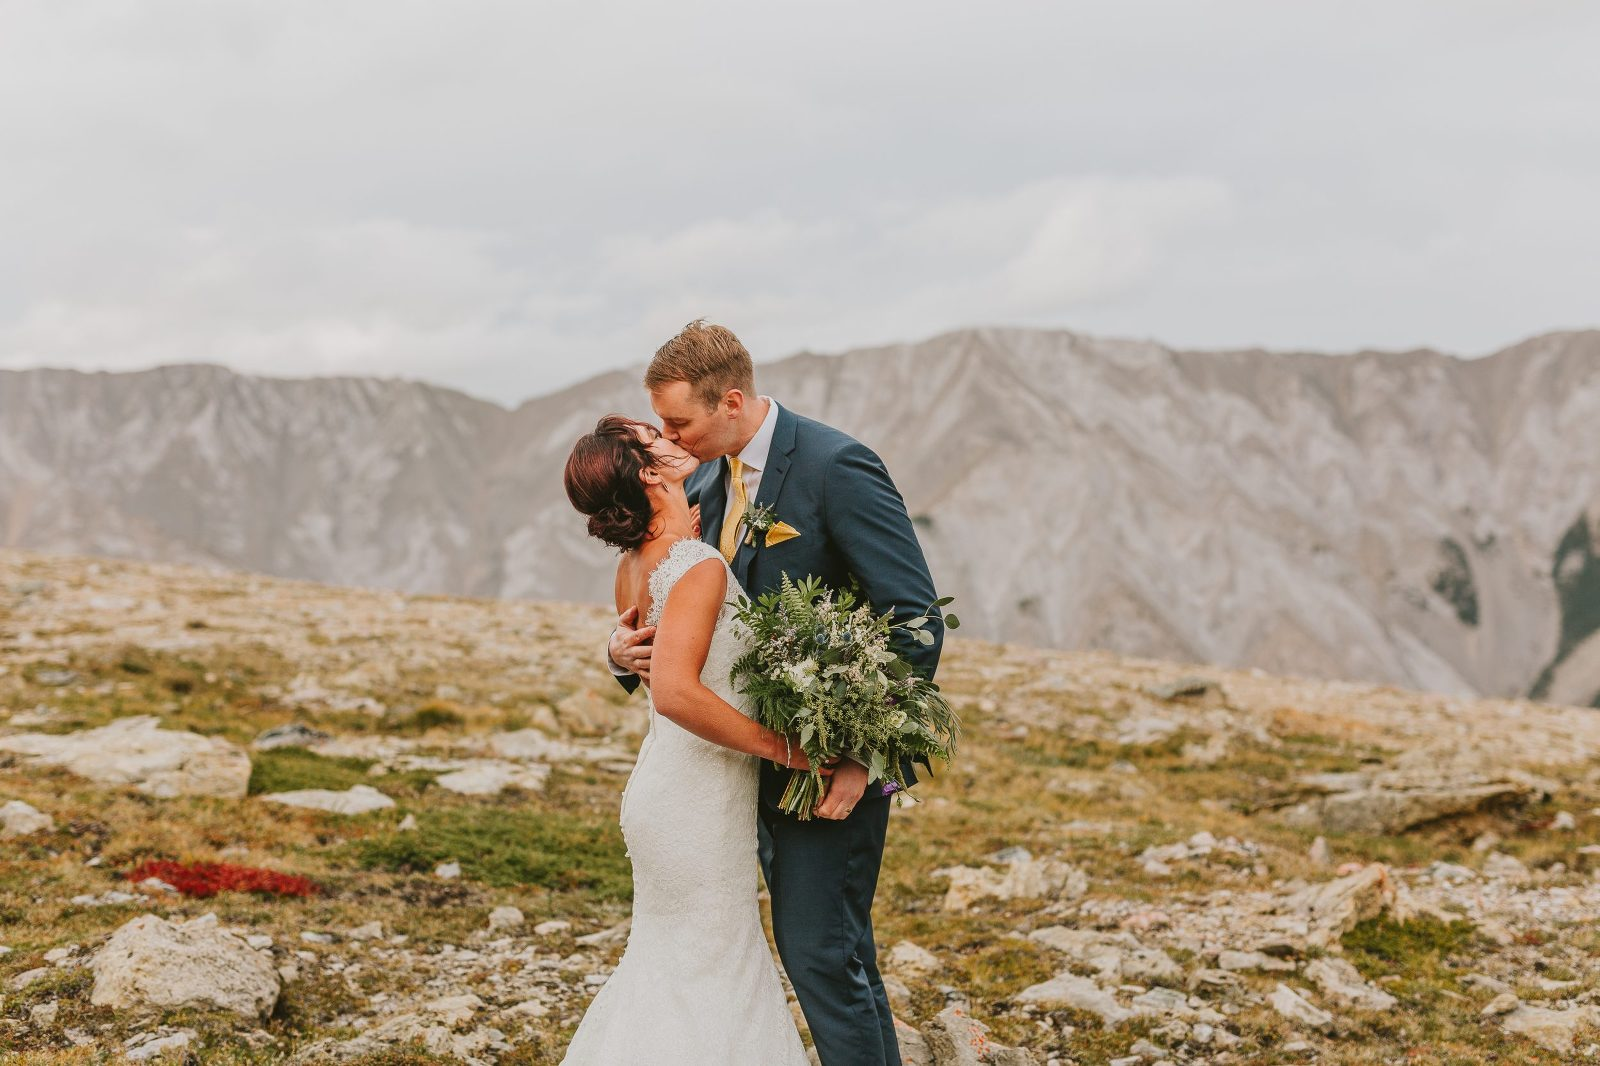 Rockies-Helicopter-Elopement-Jasper-Alberta-Emilie-Smith-Adventure-Photography